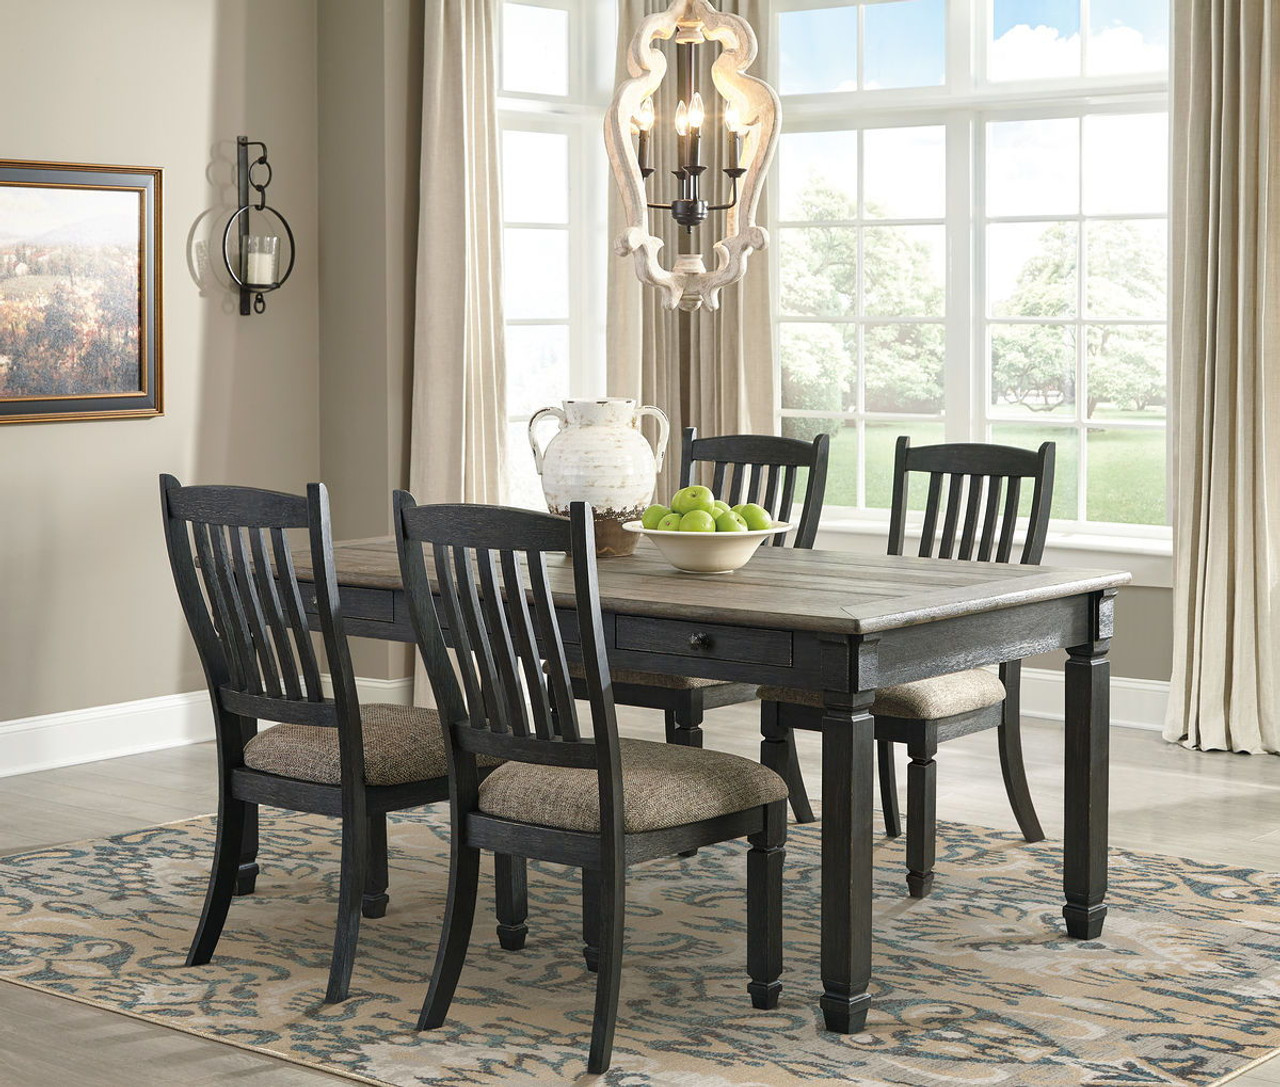 The Tyler Creek Black Gray 5 Pc Rectangular Table 4 Upholstered Side Chairs Available At Dayton Discount Furniture Serving Vandalia Kettering And Springfield Ohio